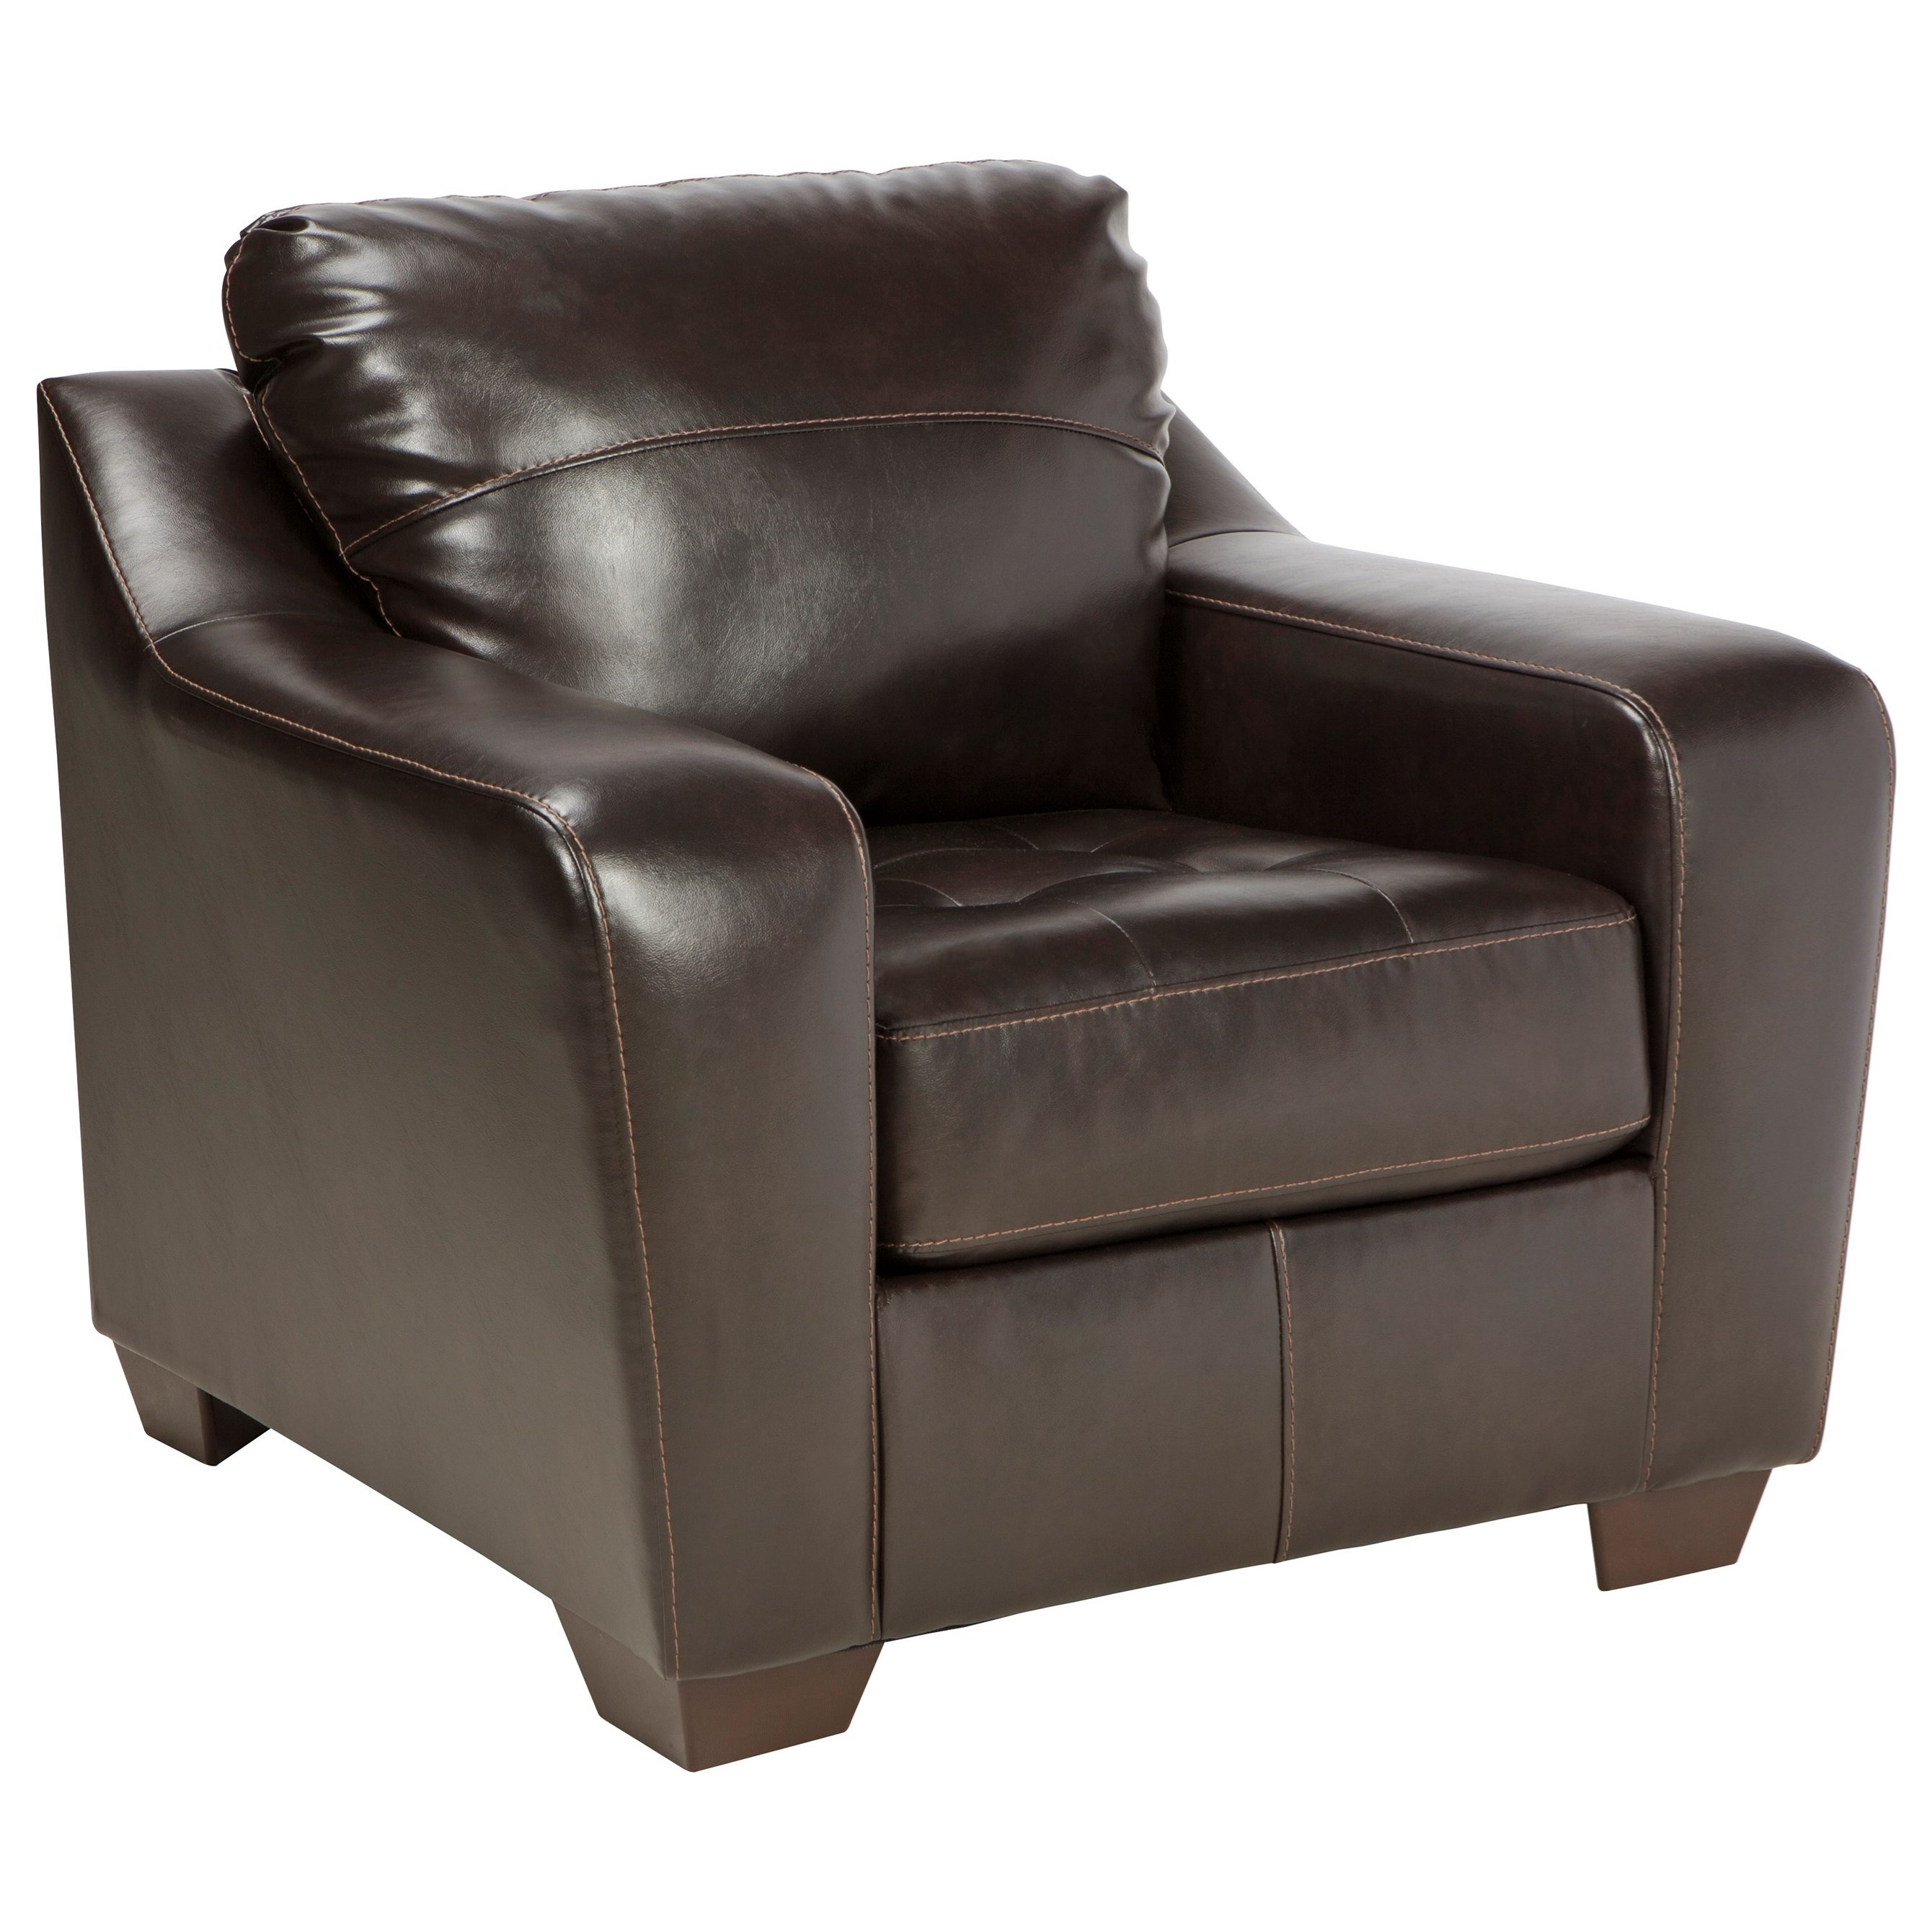 Ashley/Benchcraft Coppell DuraBlend® Chair - Item Number: 5900120